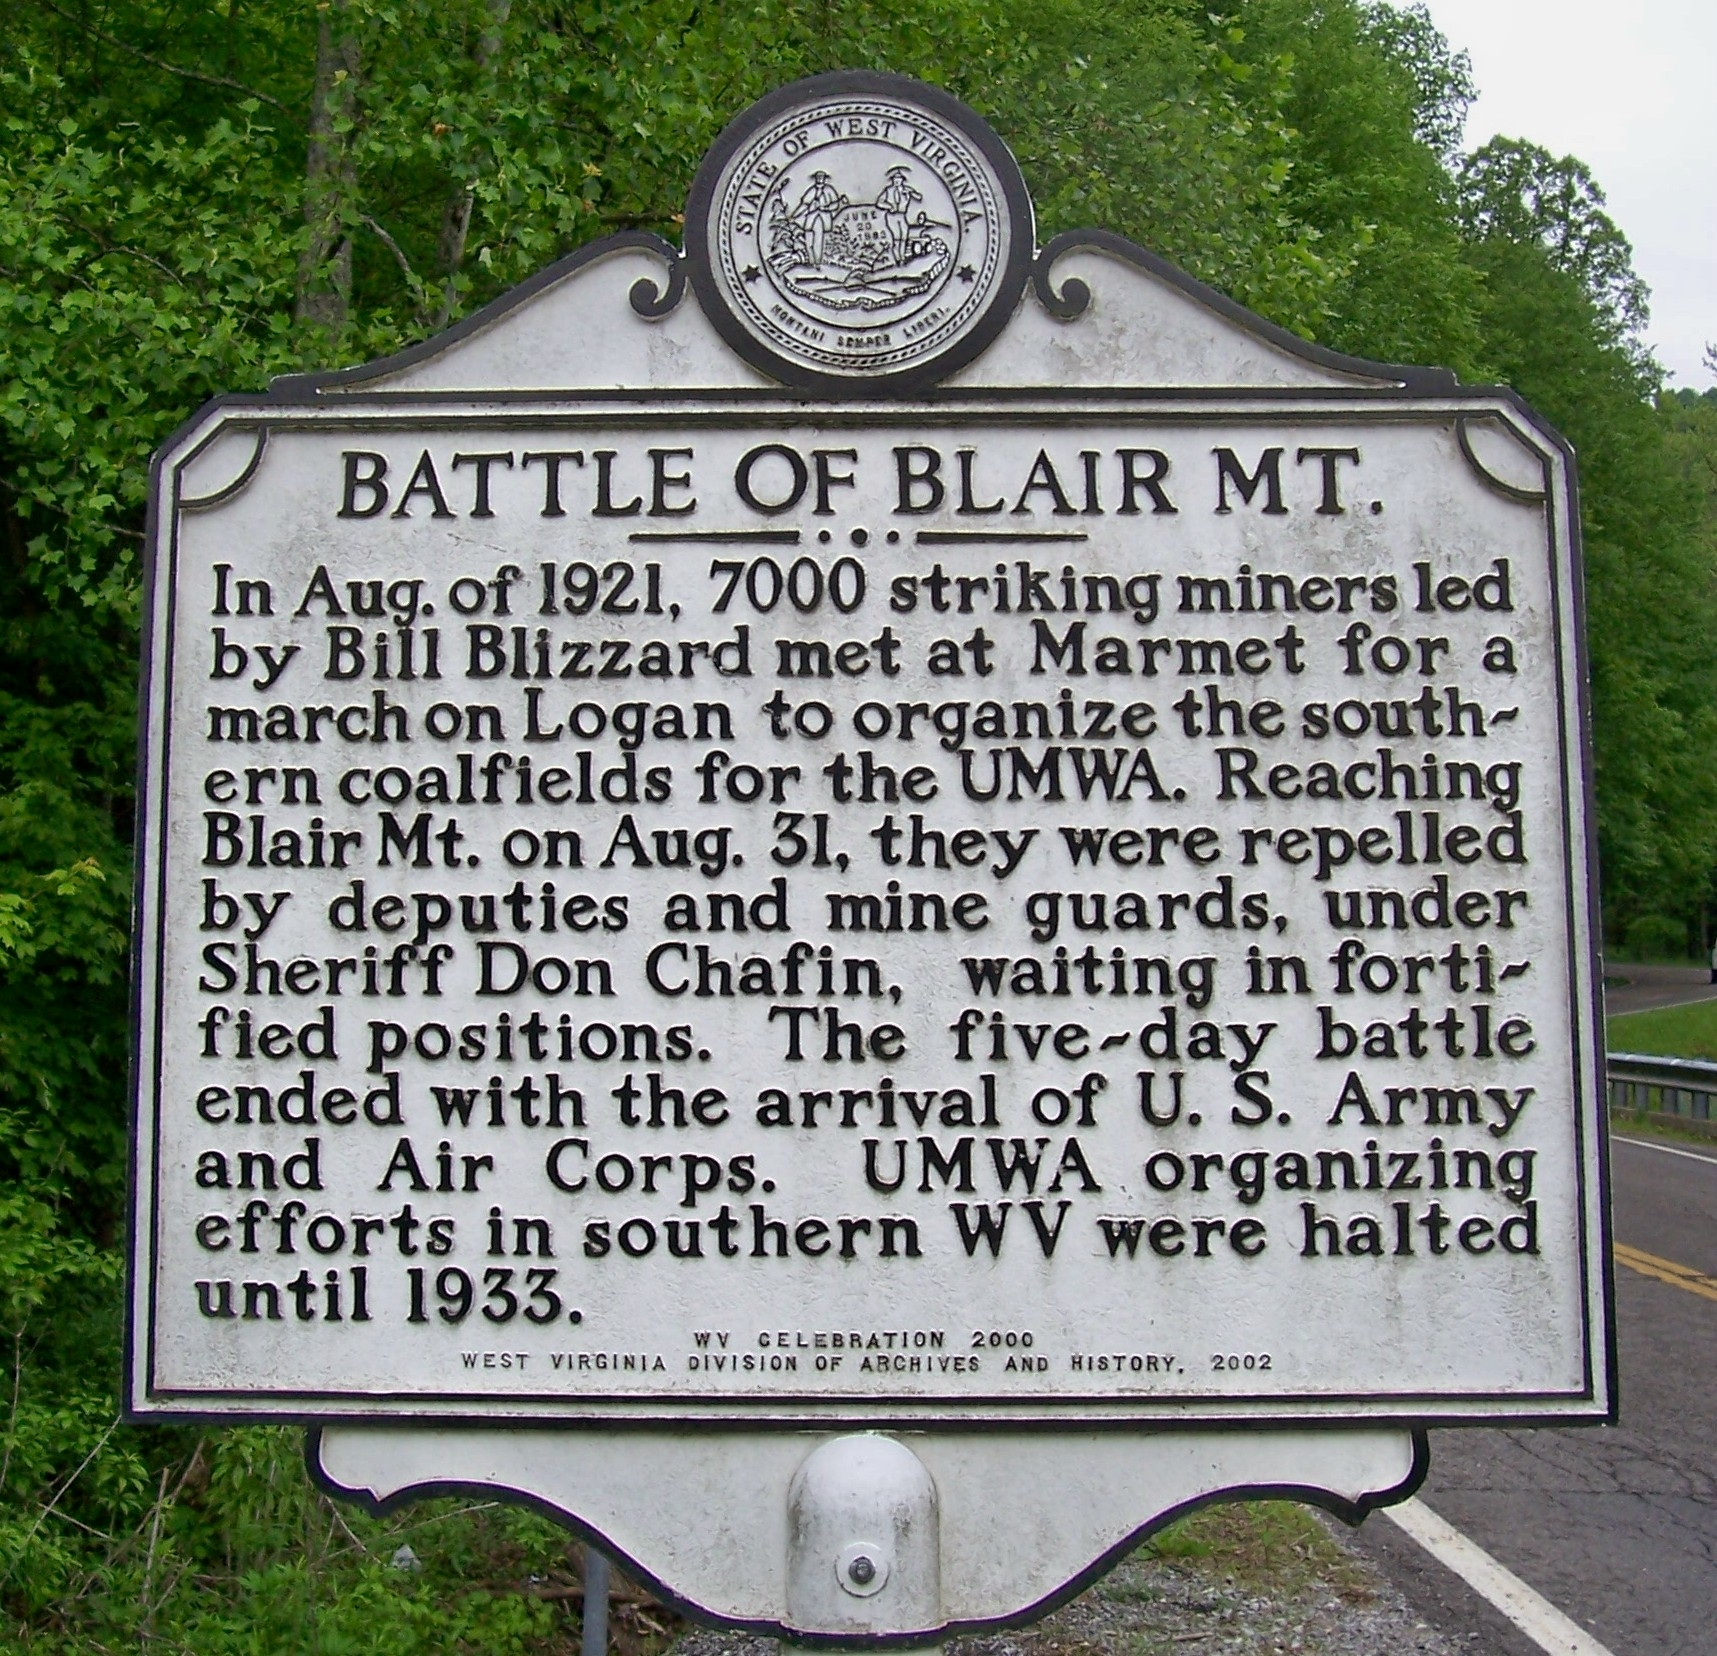 This historical marker on Blair Mountain Highway was dedicated in 2002.